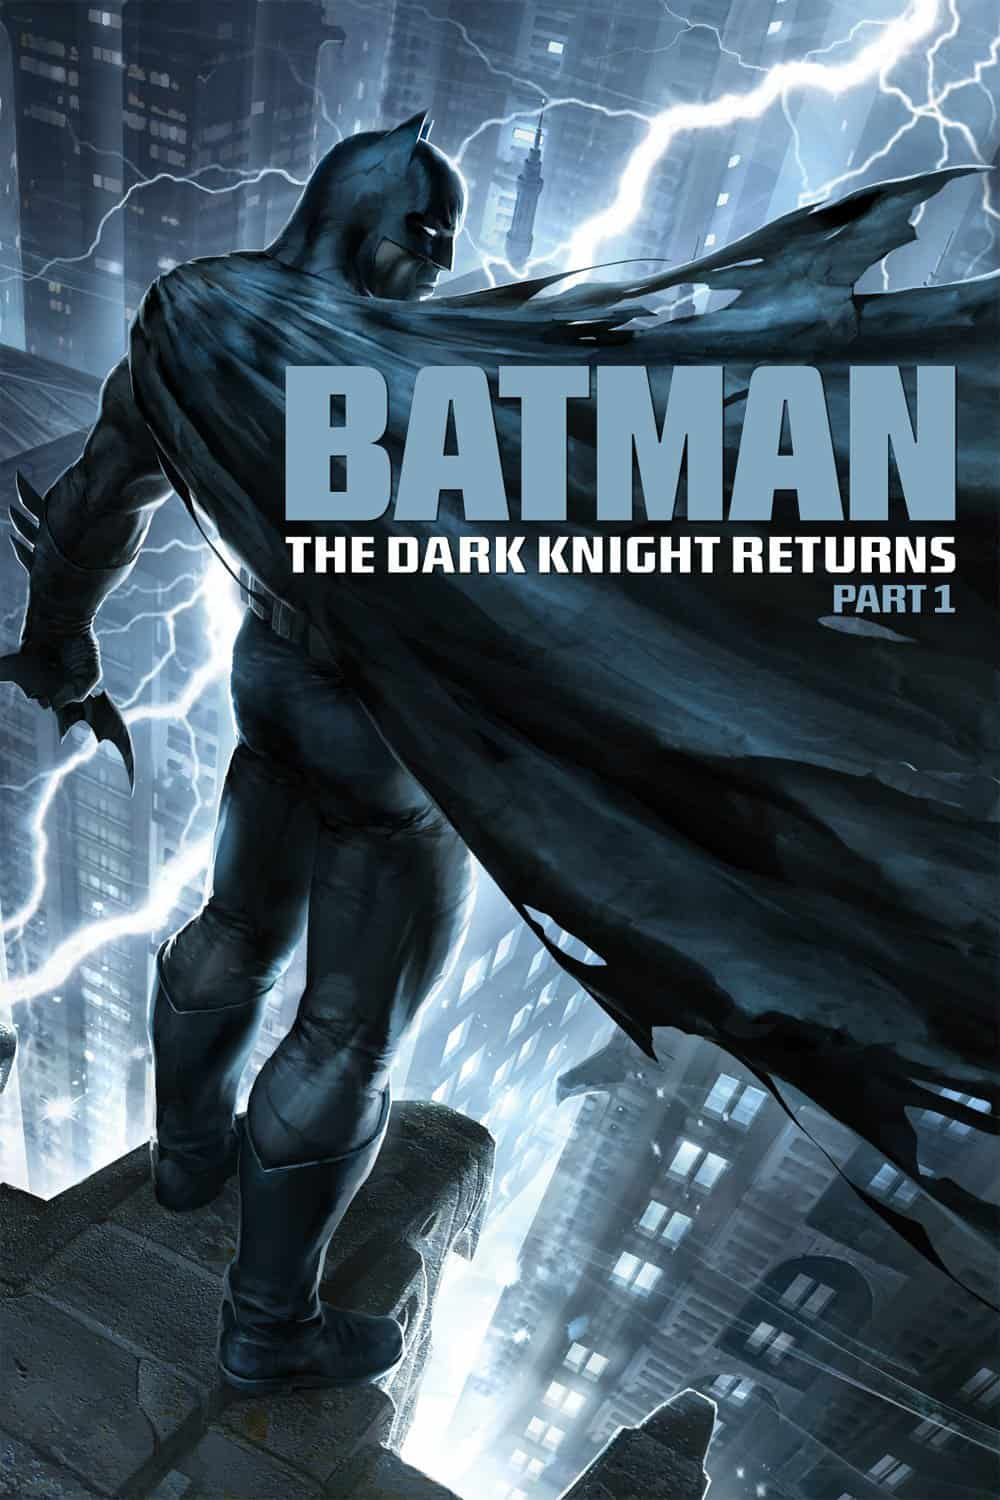 Batman: The Dark Knight Returns, Part 1, 2012